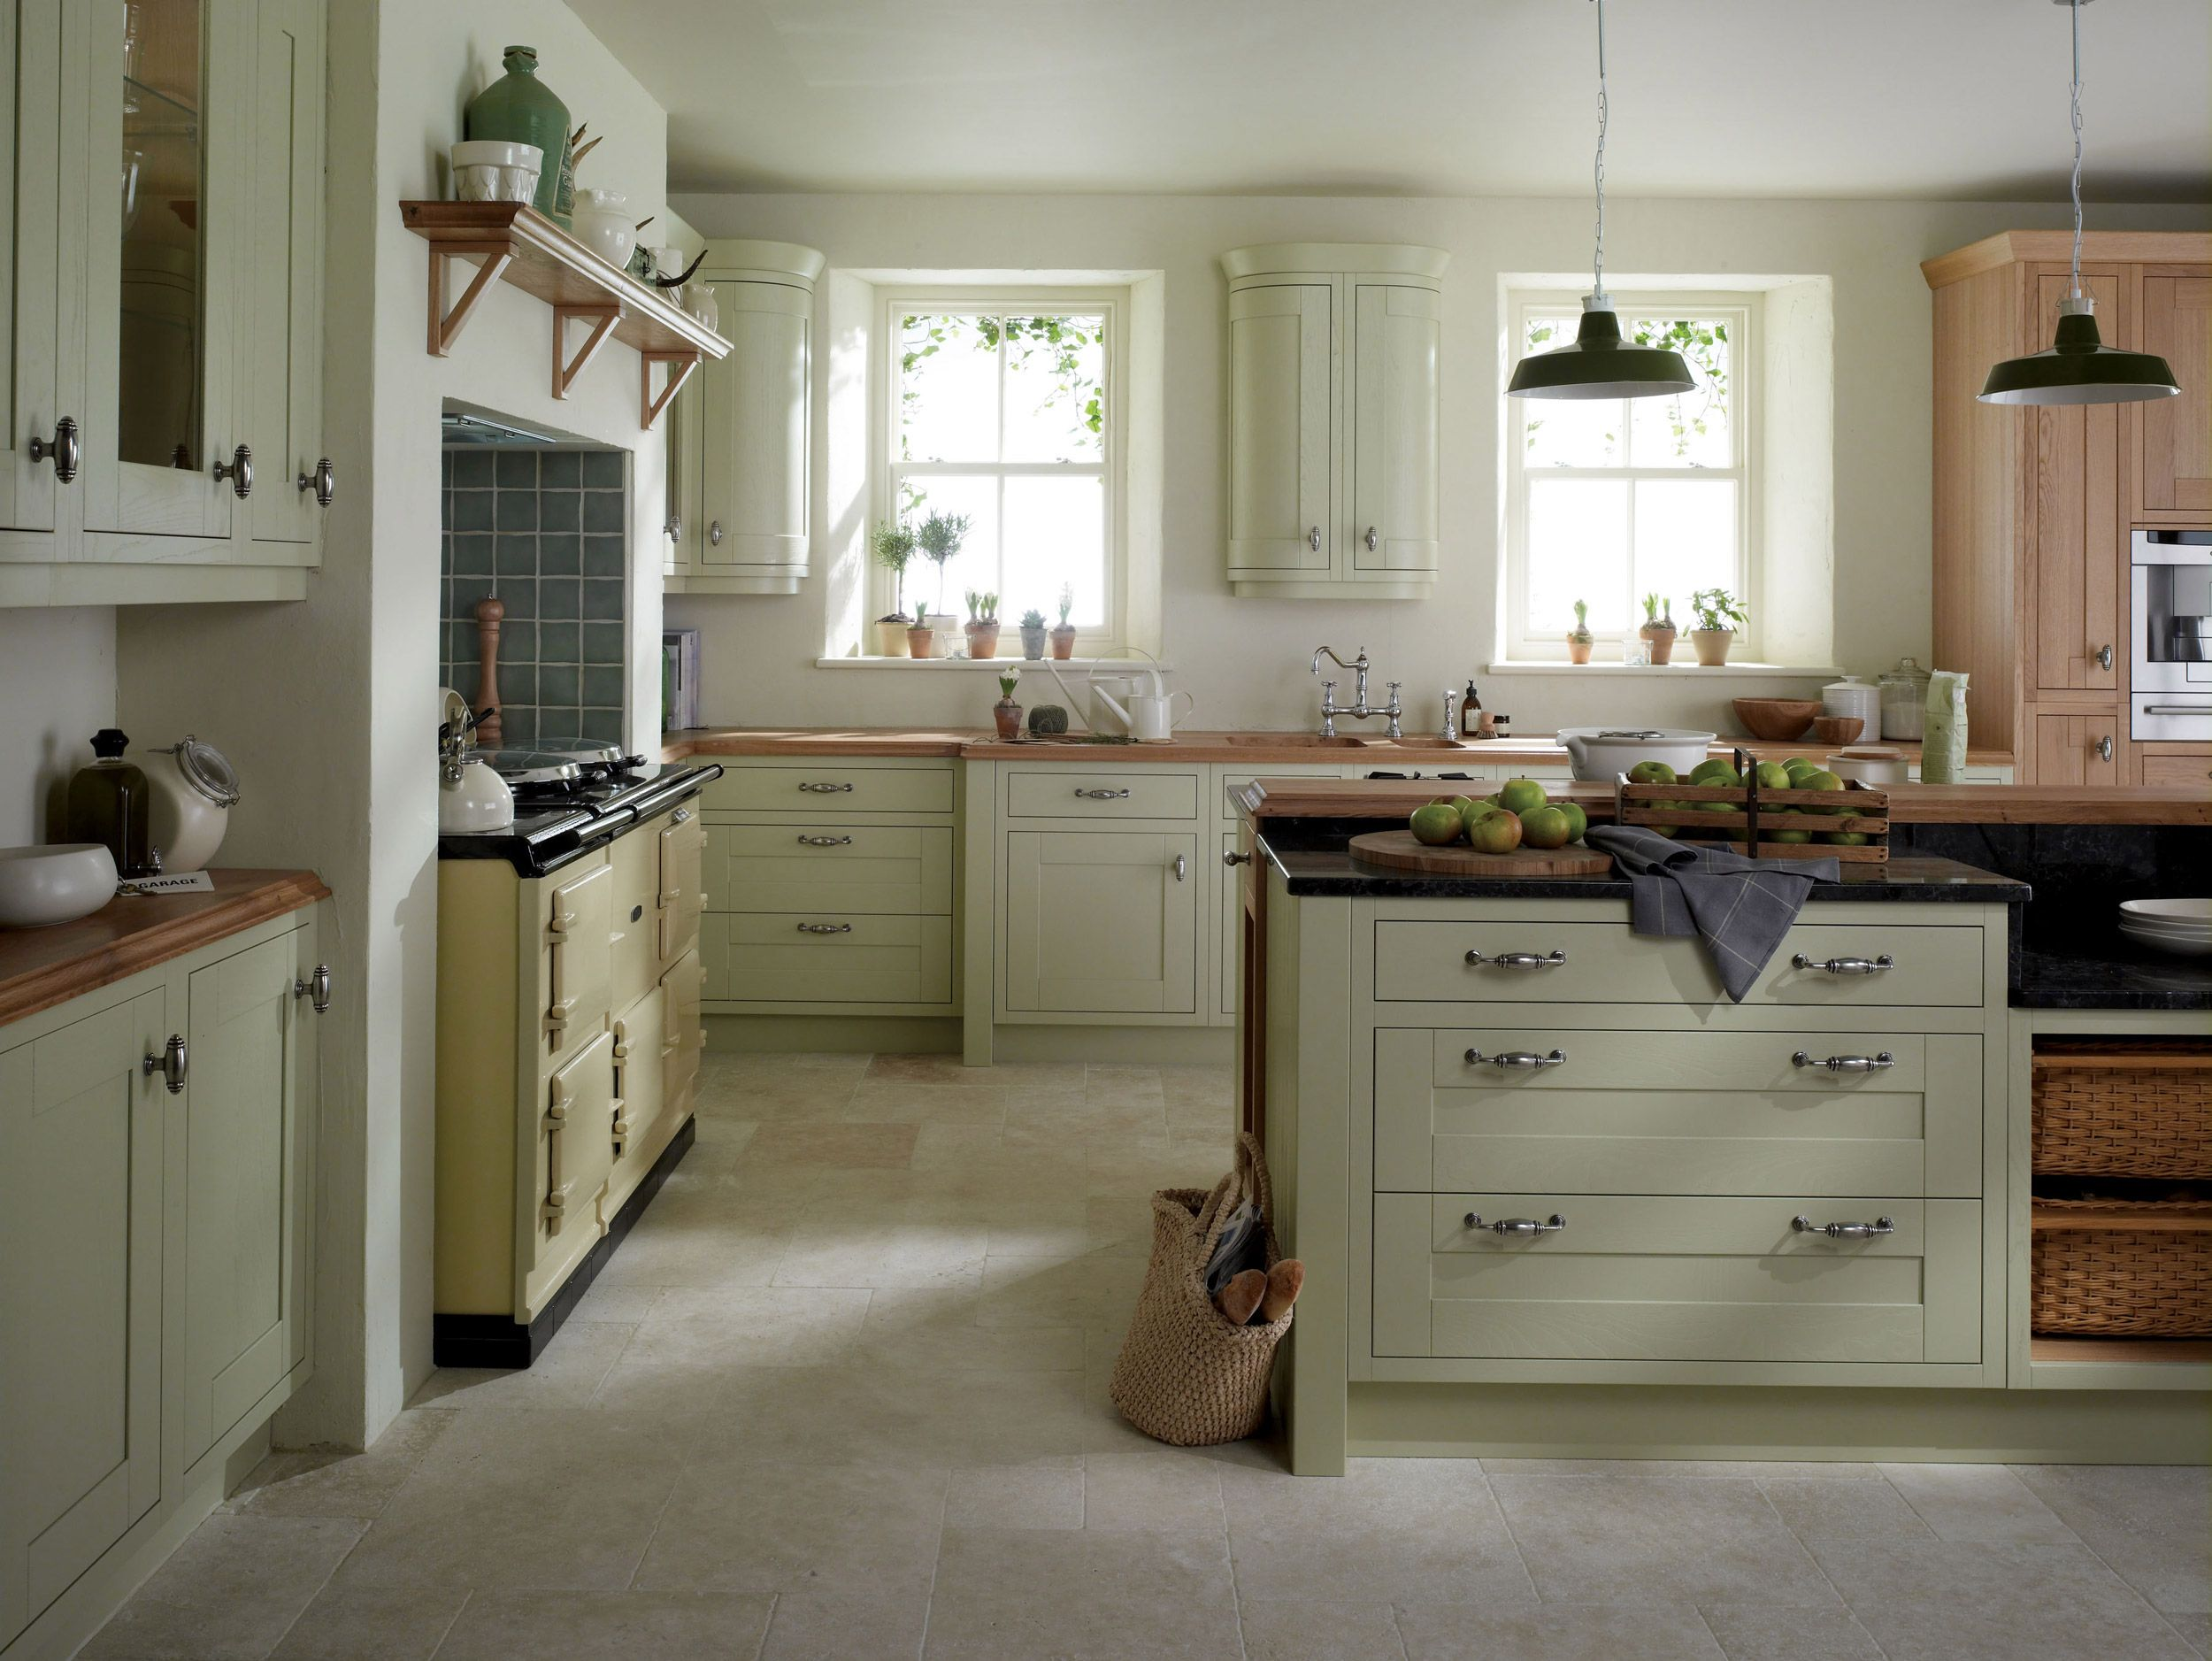 Admirable Country Kitchen Design With Wooden Countertop And Wooden